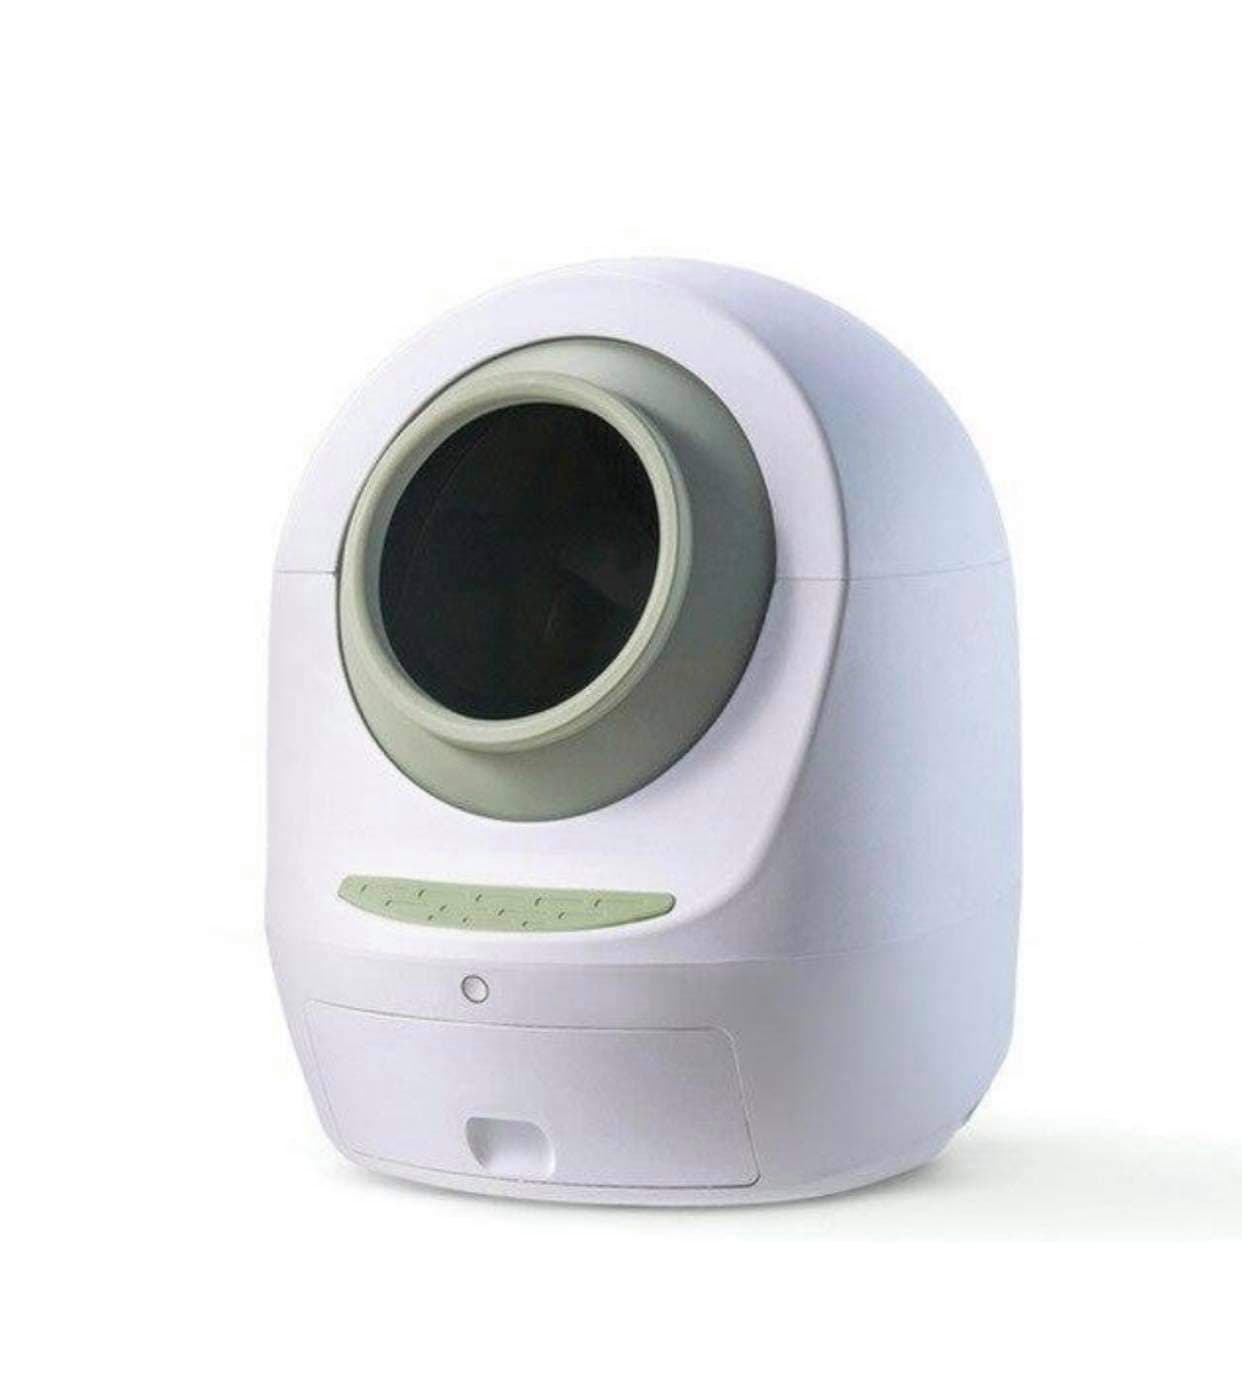 catmeet fully automatic WIFI toilet green